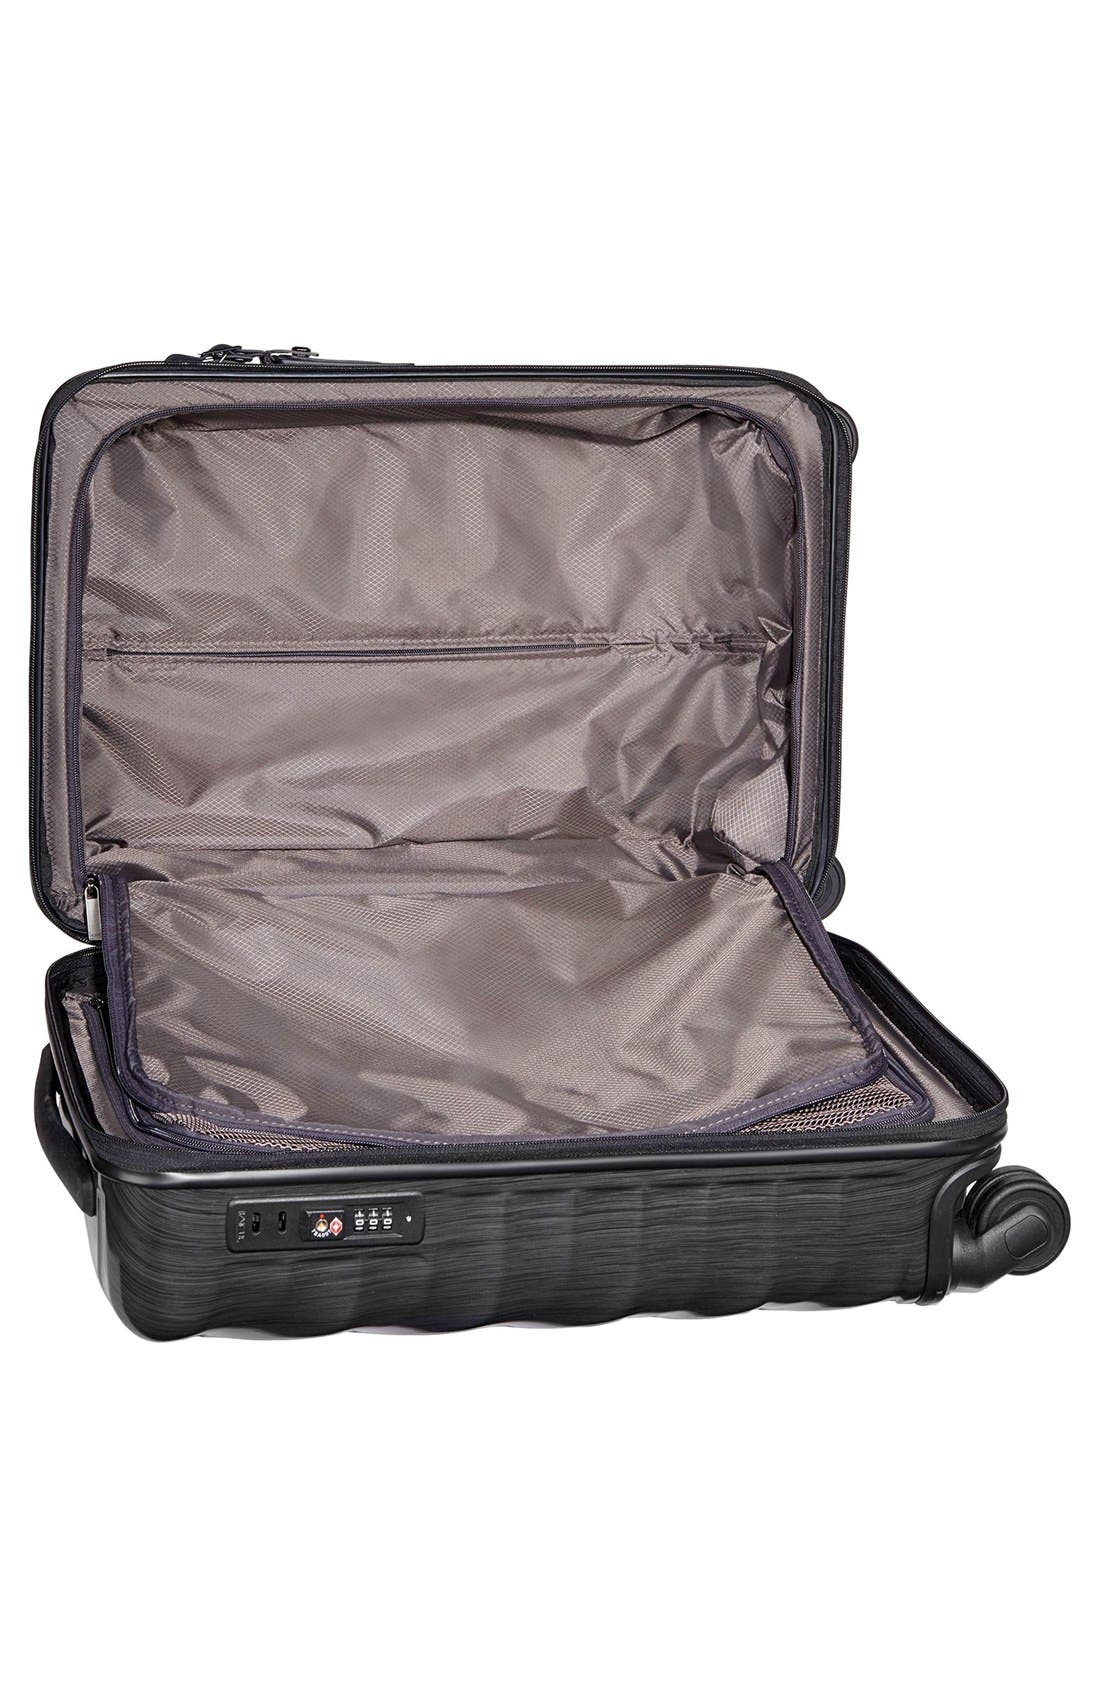 19 Degree 22 Inch Continental Wheeled Carry-On,                             Alternate thumbnail 4, color,                             001